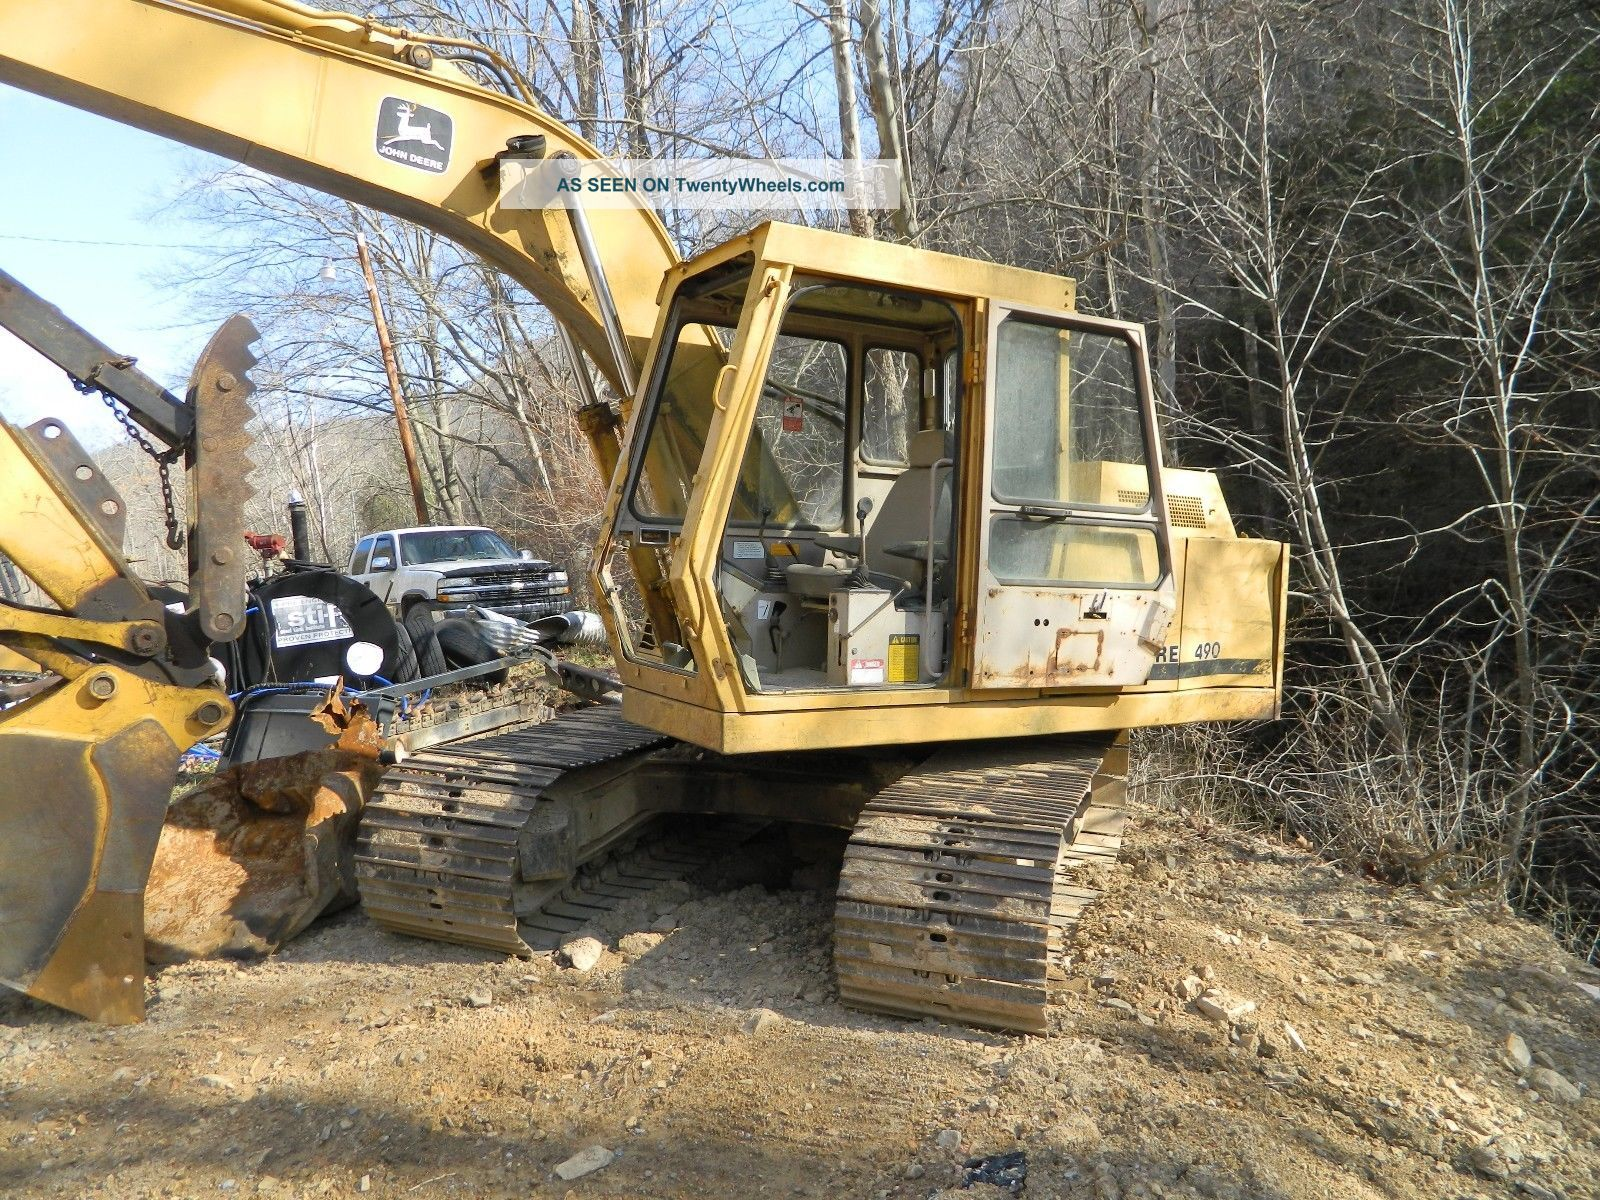 John Deere 490 Excavator With Thumb 30 Bucket Brush Grle